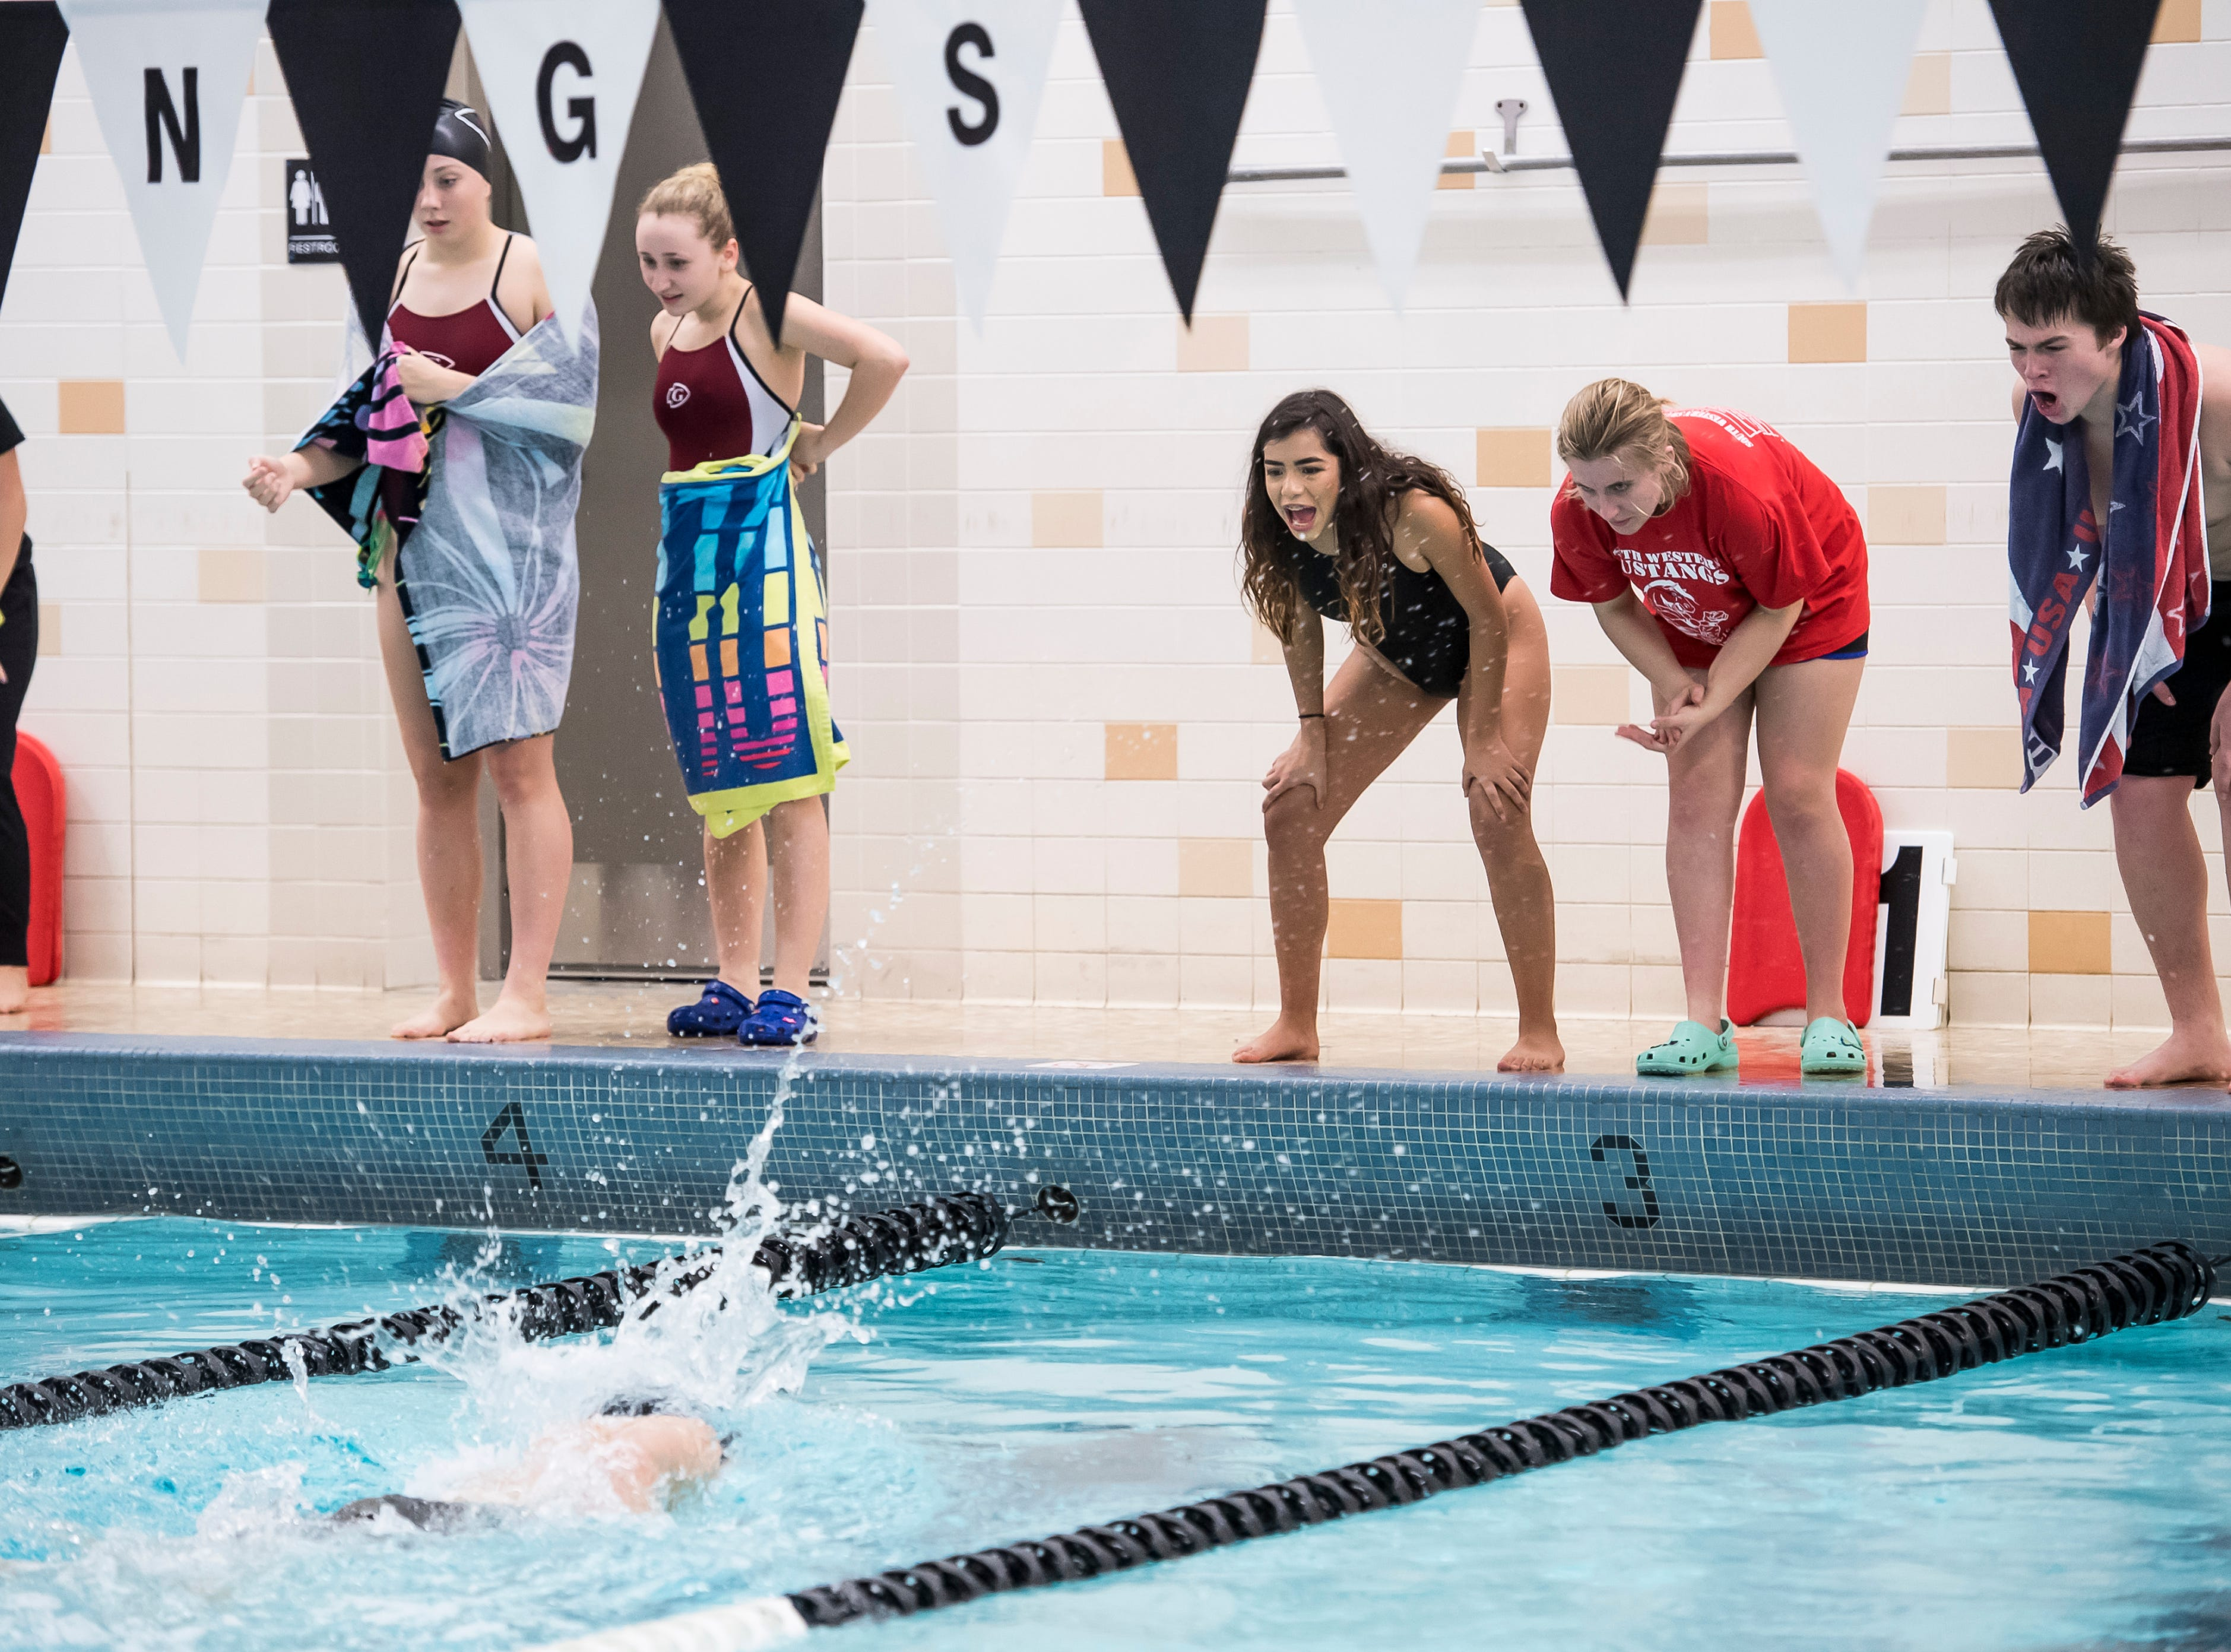 South Western swimmers cheer on one of their teammates in the boys' 200 free race during a meet between Gettysburg and South Western at Emory H. Markle Intermediate School on December 20, 2018.